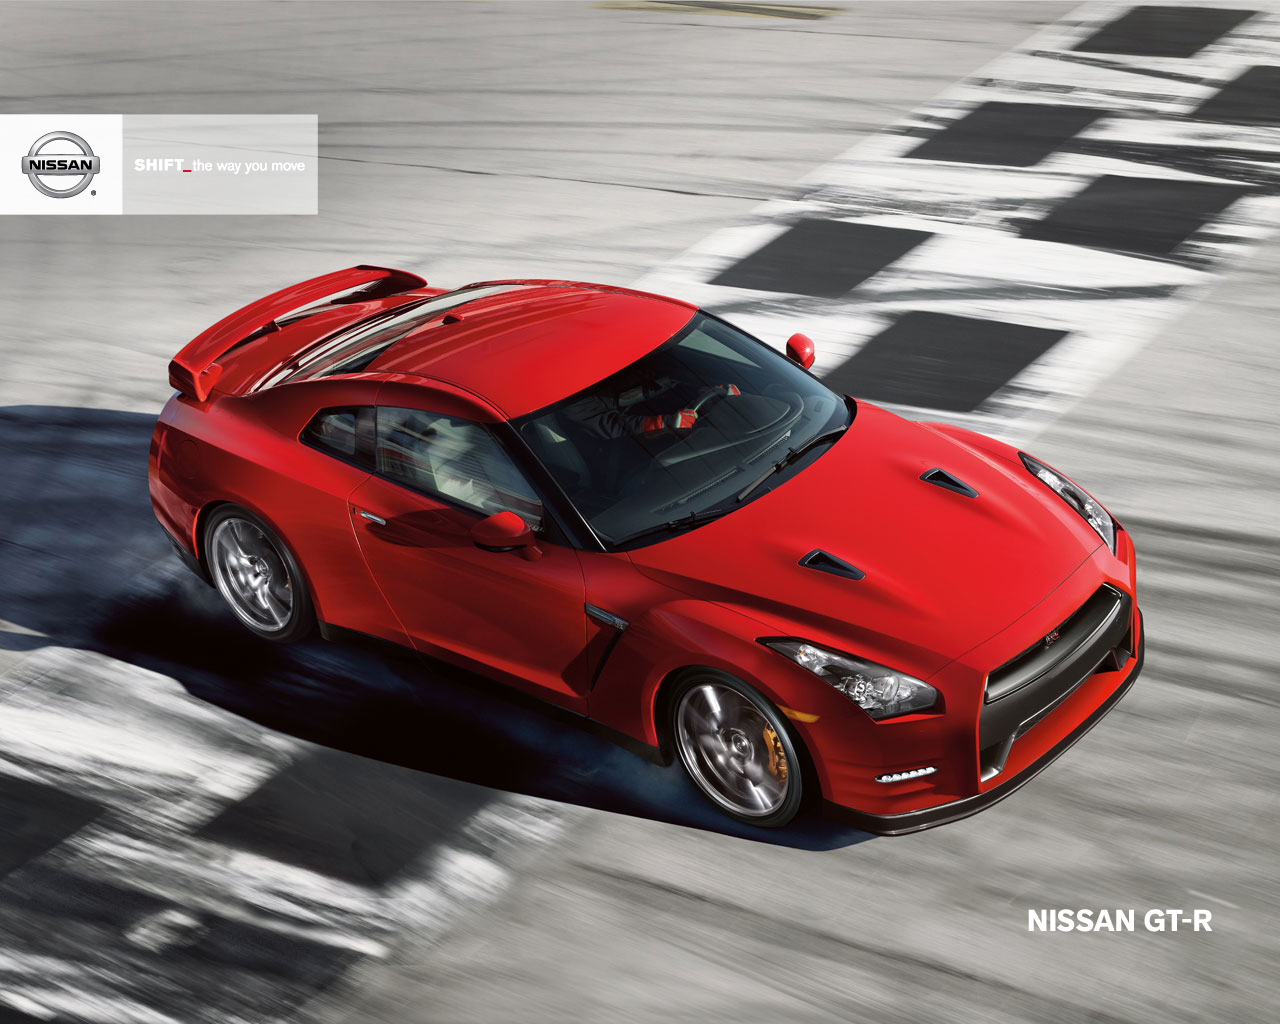 nissan gt r 2012 specv in oman new car prices specs. Black Bedroom Furniture Sets. Home Design Ideas